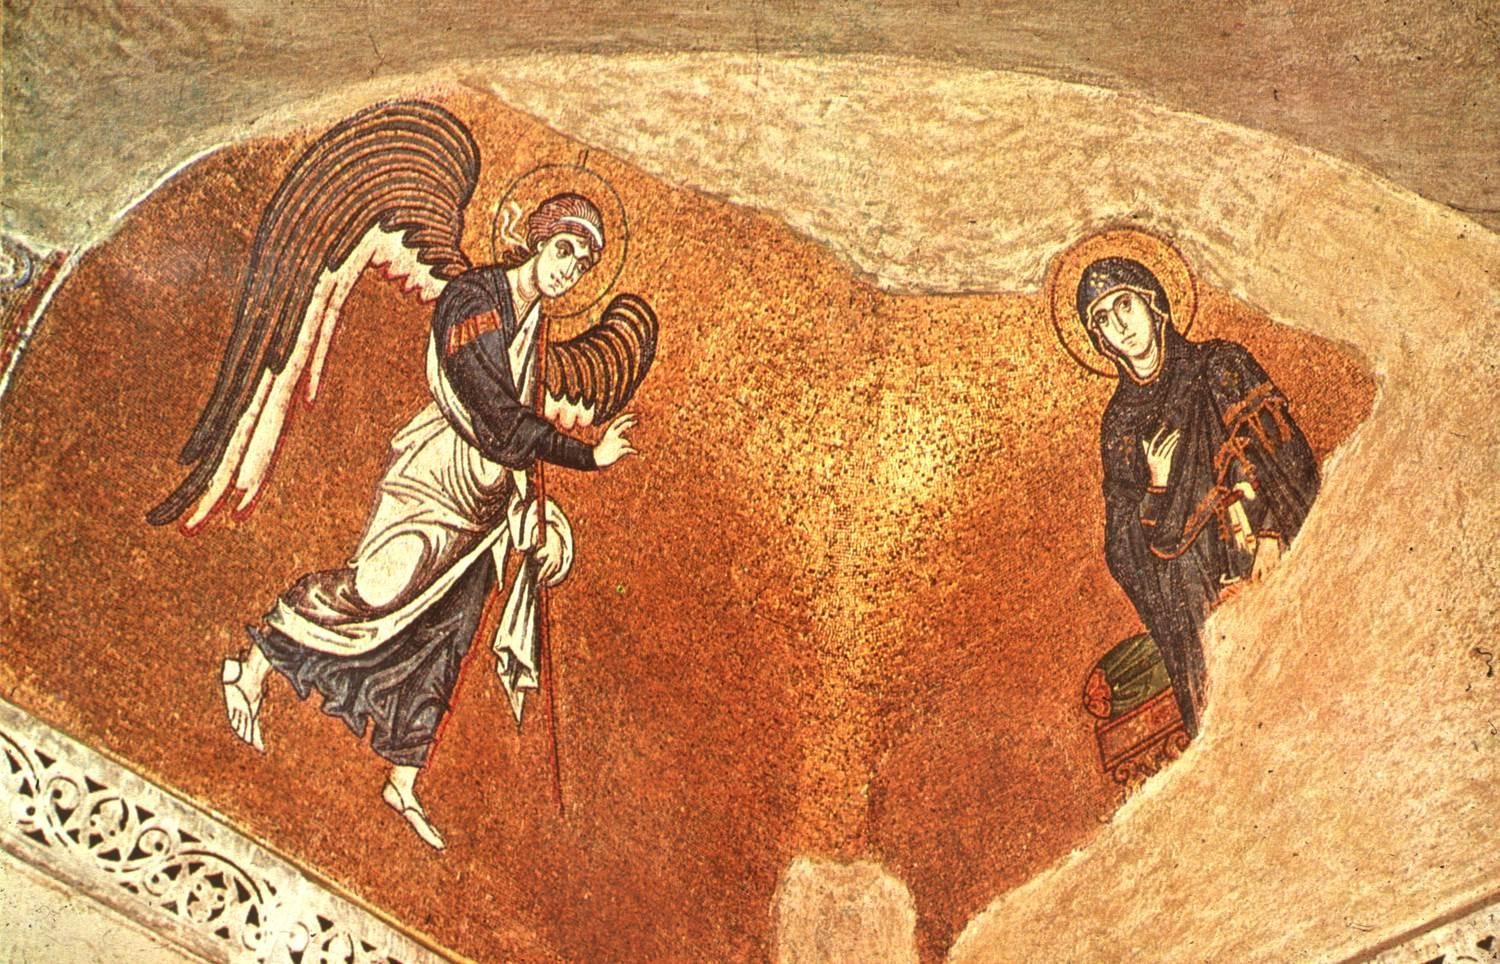 daphni_squinch_mosaic_annunciation-145CD4C7B5B0F84169C